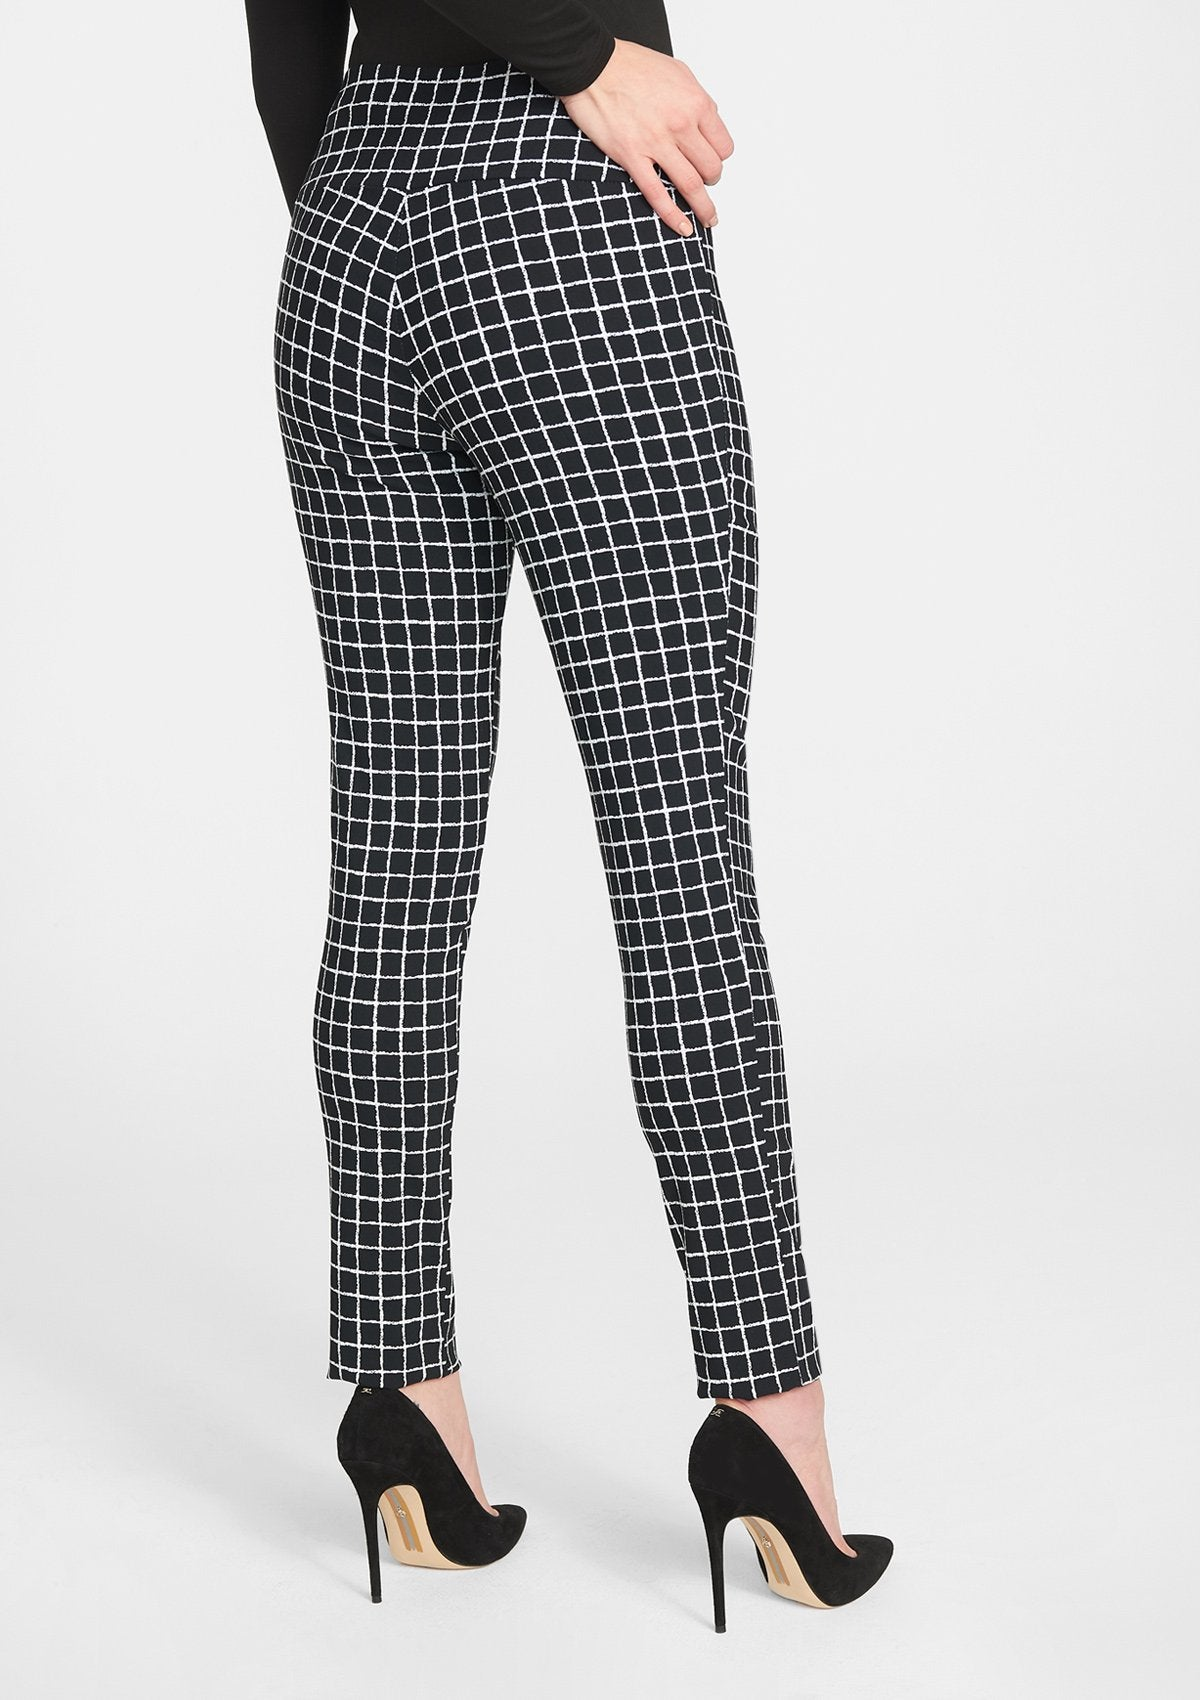 Black Plaid Based Print